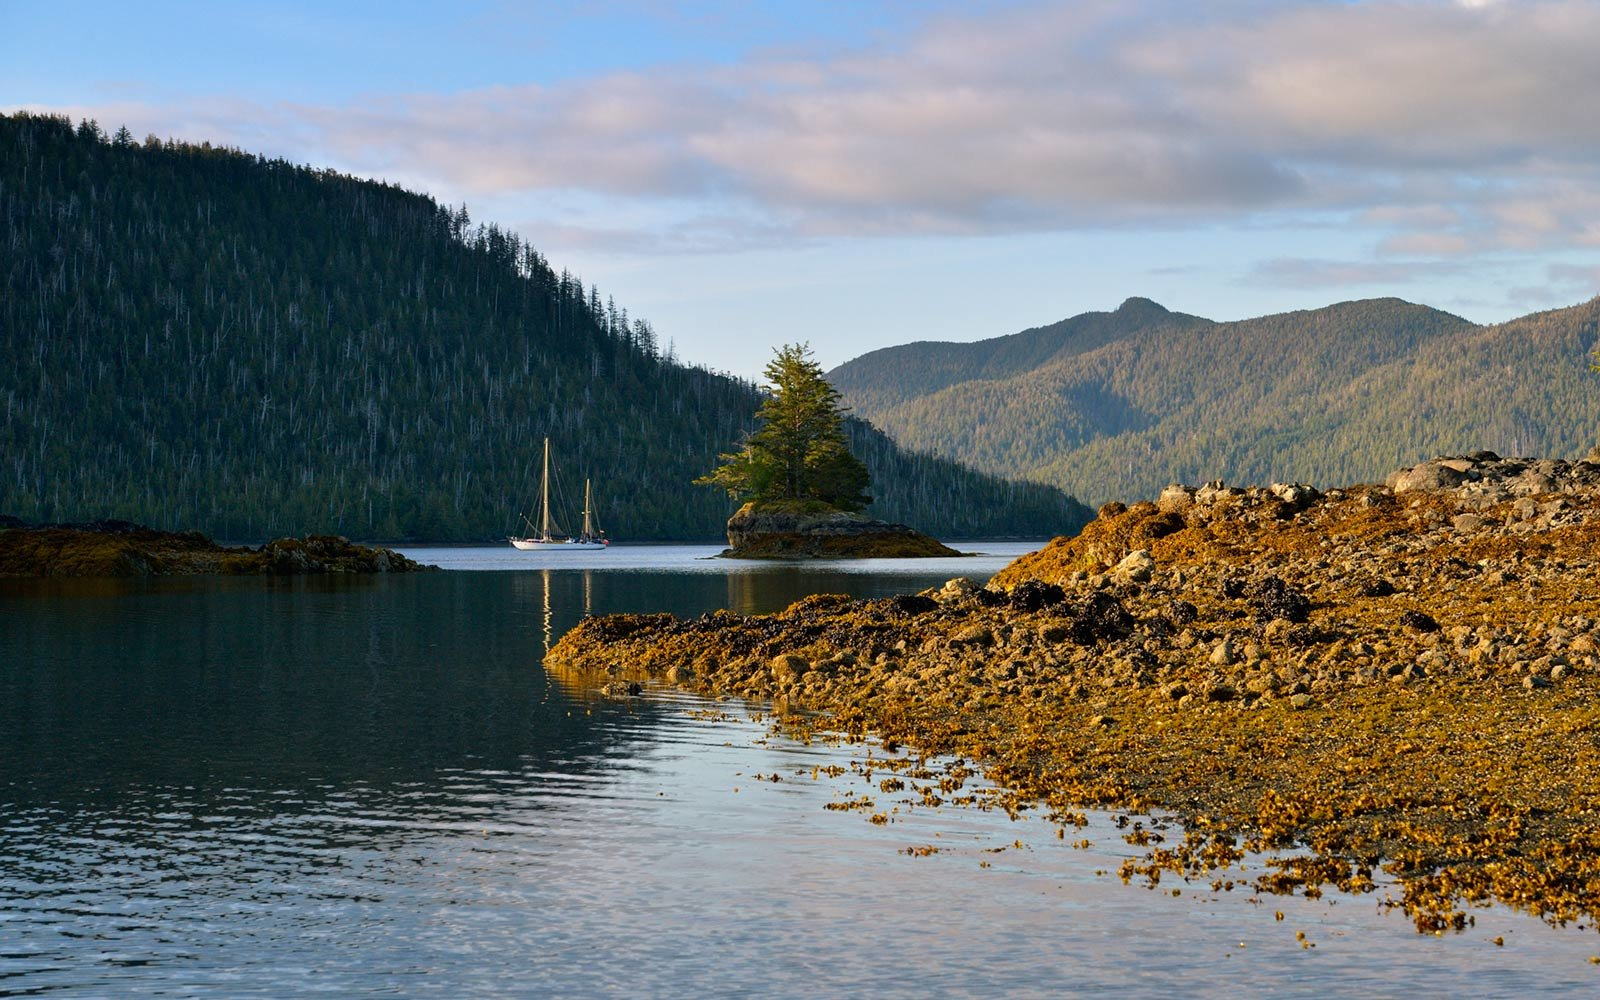 Sailboat, Island Bay, Haida Gwaii, British Columbia, Canada